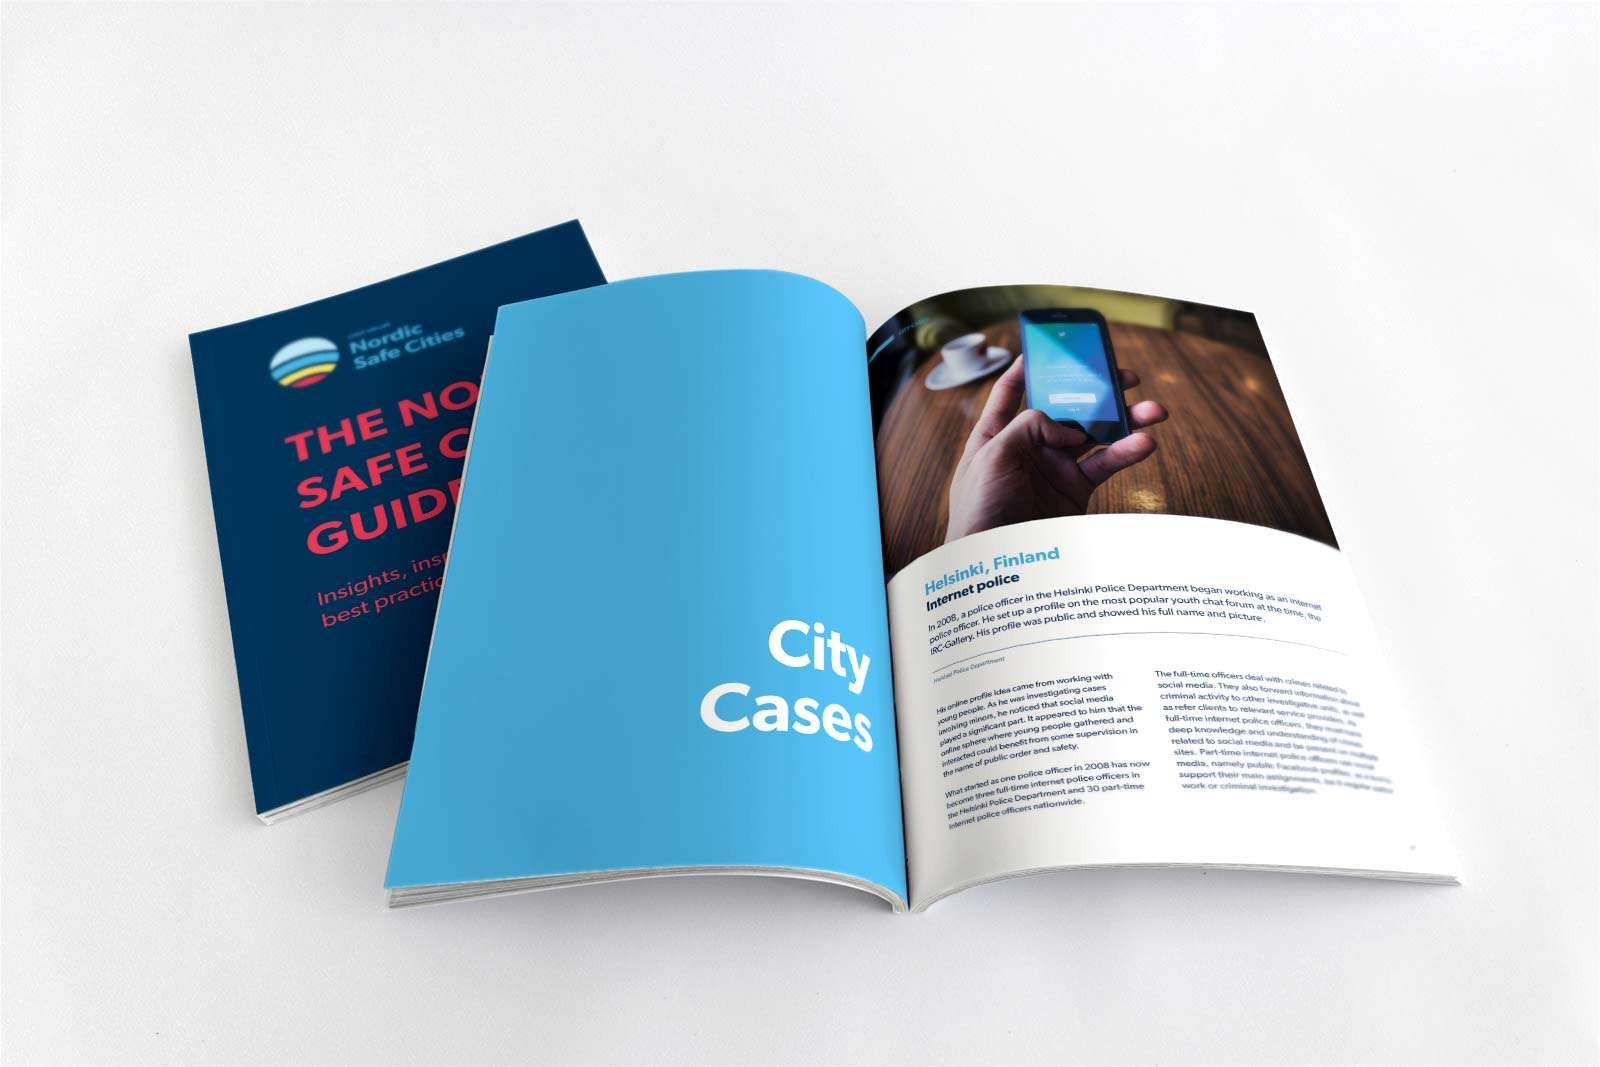 Nordic Safe Cities Manual